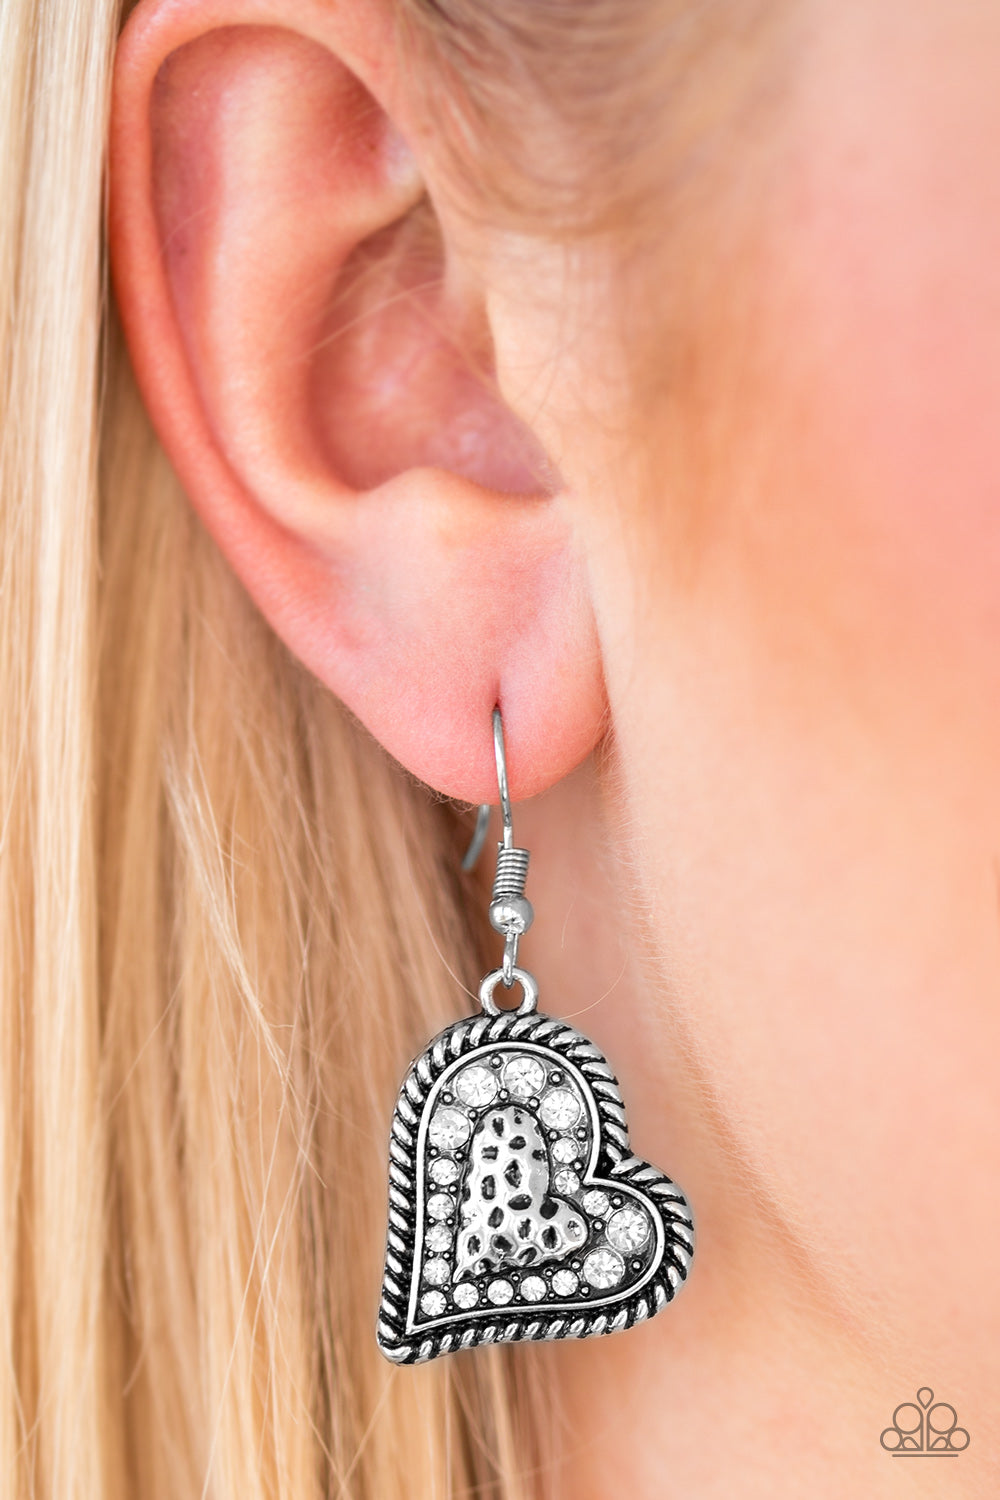 Encrusted in glittery white rhinestones, the center of a heart shaped frame is embossed in a textured heart for a flirty finish. Earring attaches to a standard fishhook fitting.  Sold as one pair of earrings.  Always nickel and lead free.